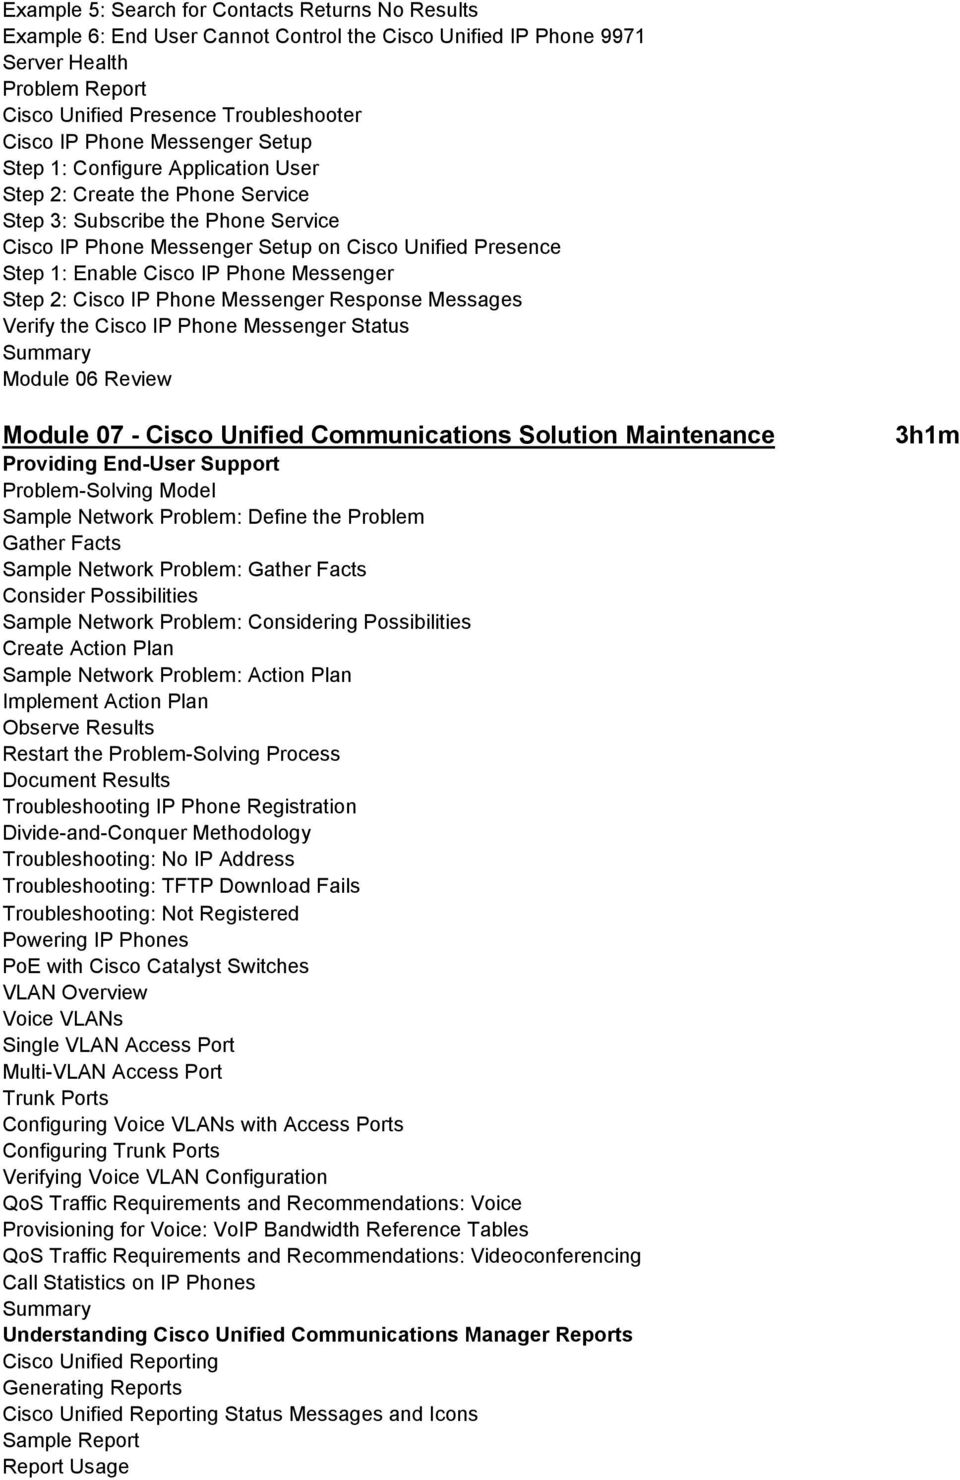 IP Phone Messenger Step 2: Cisco IP Phone Messenger Response Messages Verify the Cisco IP Phone Messenger Status Module 06 Review Module 07 - Cisco Unified Communications Solution Maintenance